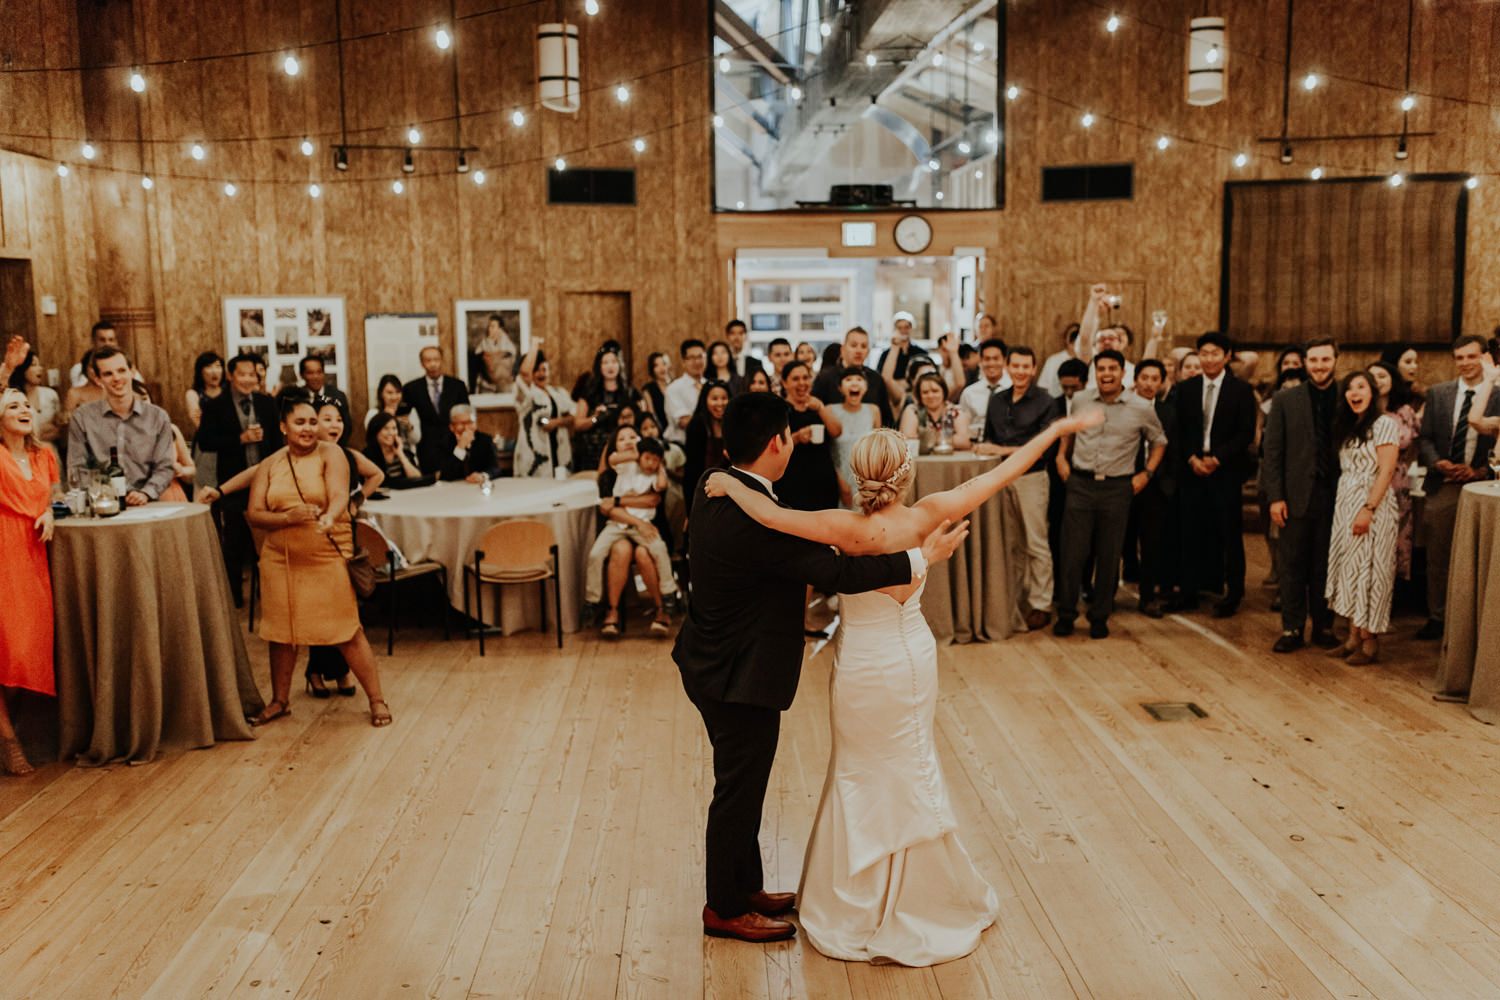 A wedding couples celebrates in the Great Hall.